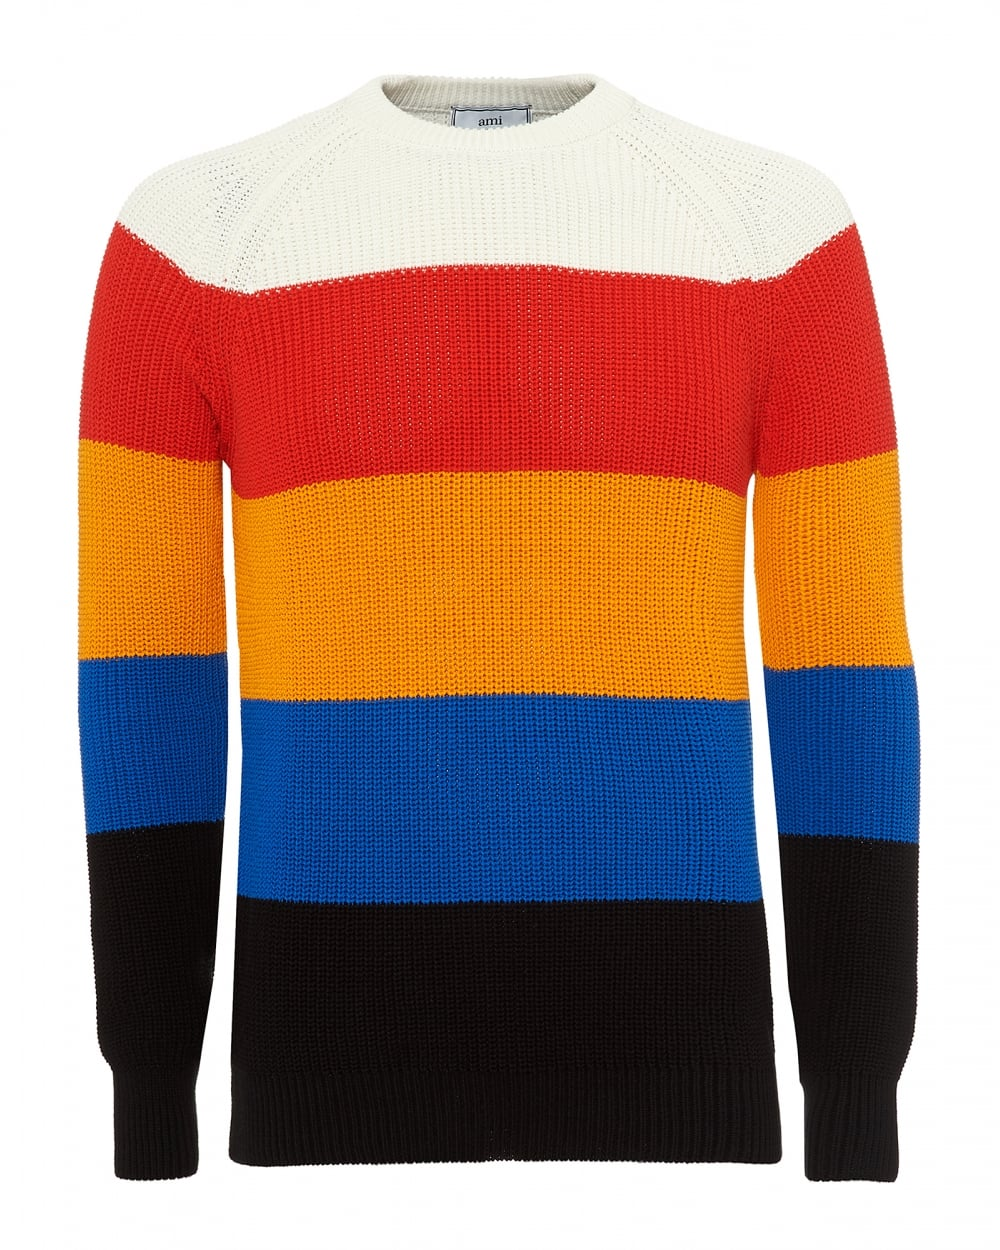 Ami Mens Broad Striped Knit Hooped Neck Multi Coloured Jumper